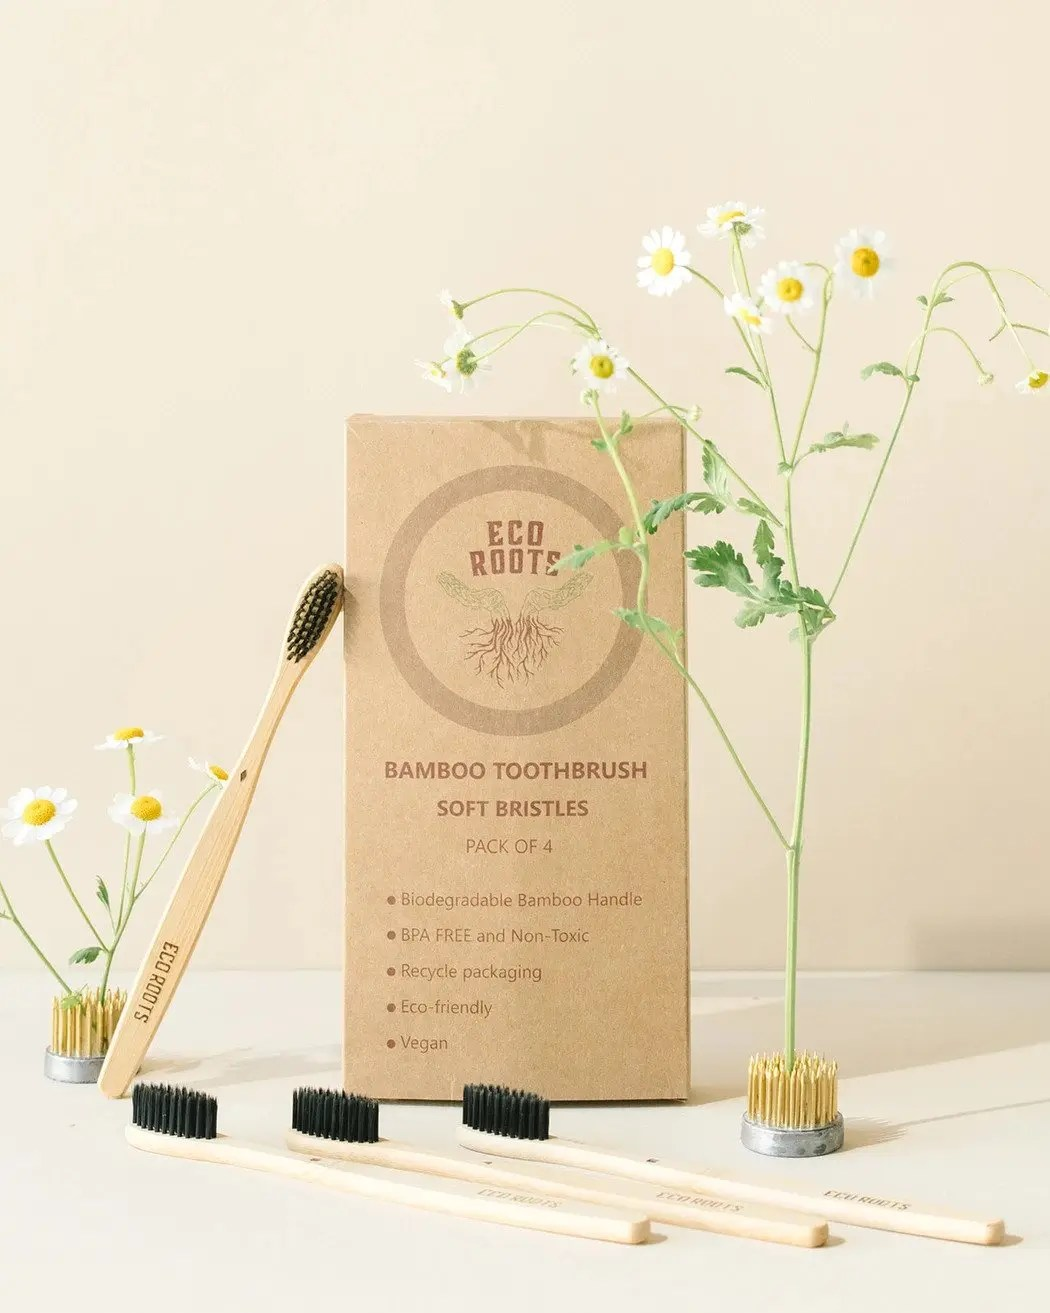 Zero waste store Eco Roots toothbrushes with flowers in the background